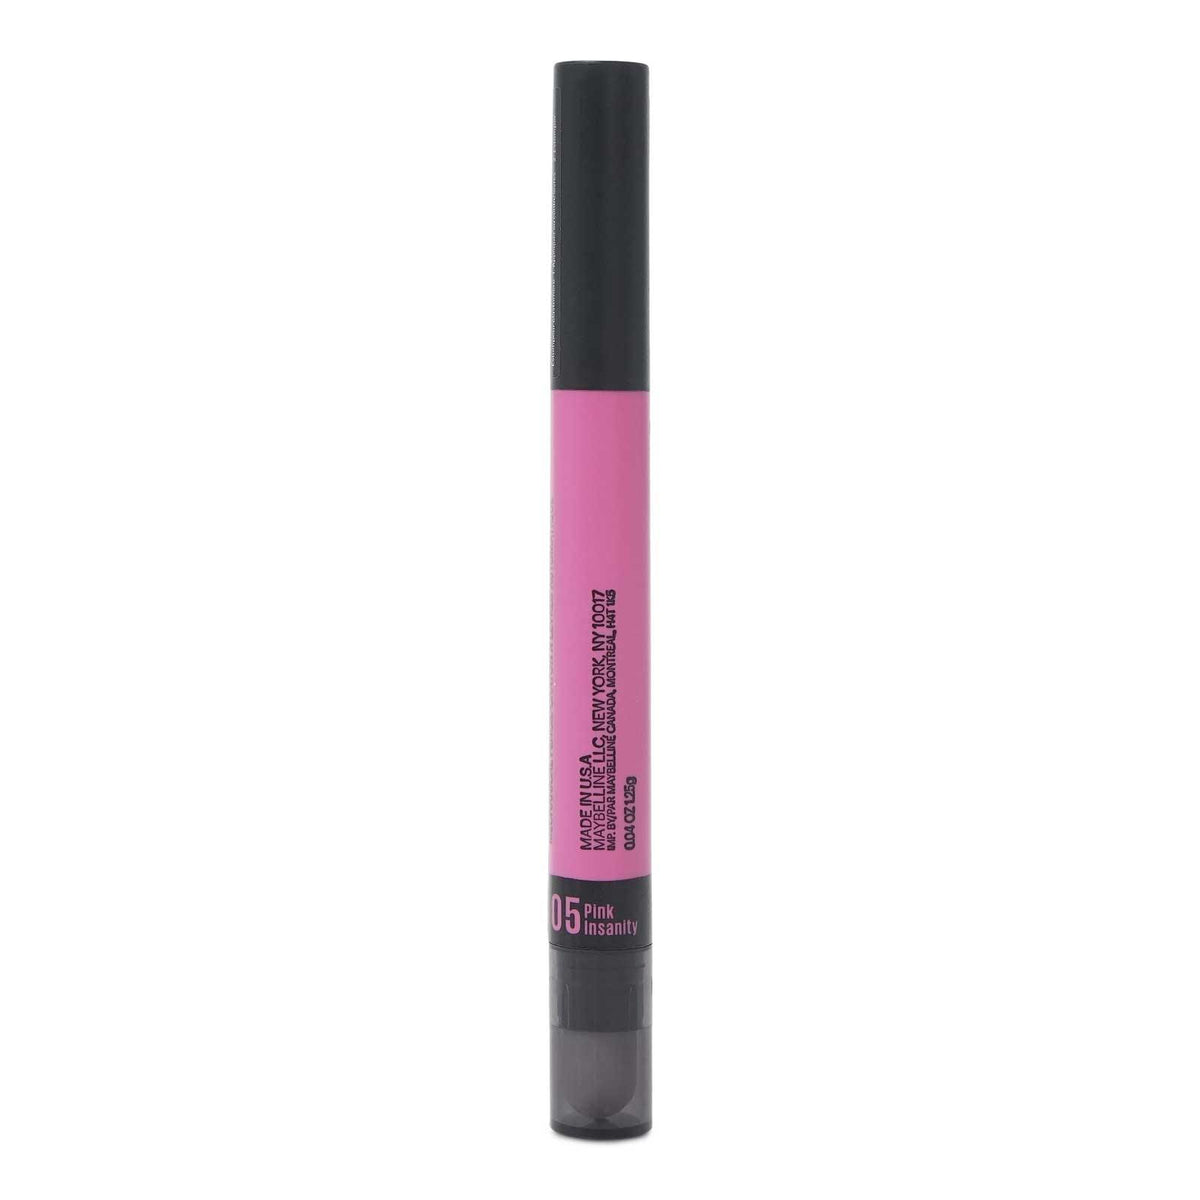 MAYBELLINE COLOR BLUR LIPCOLOR - PINK INSANITY (24/cs)